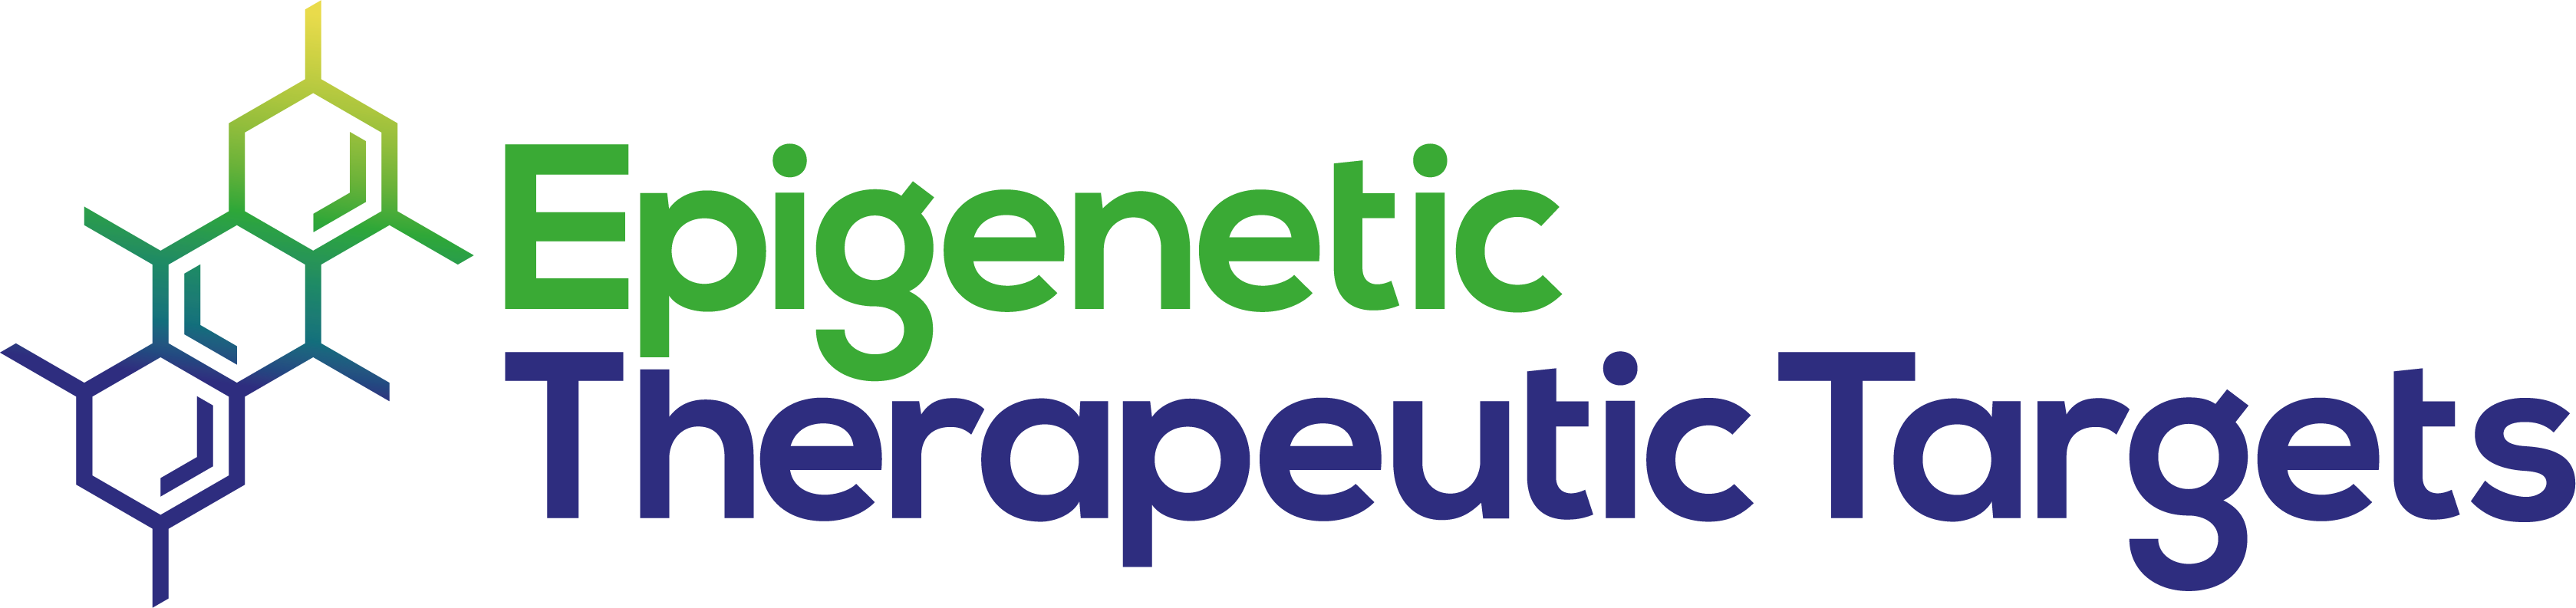 HW210201 Epigenetic Therapeutic Targets logo 2021